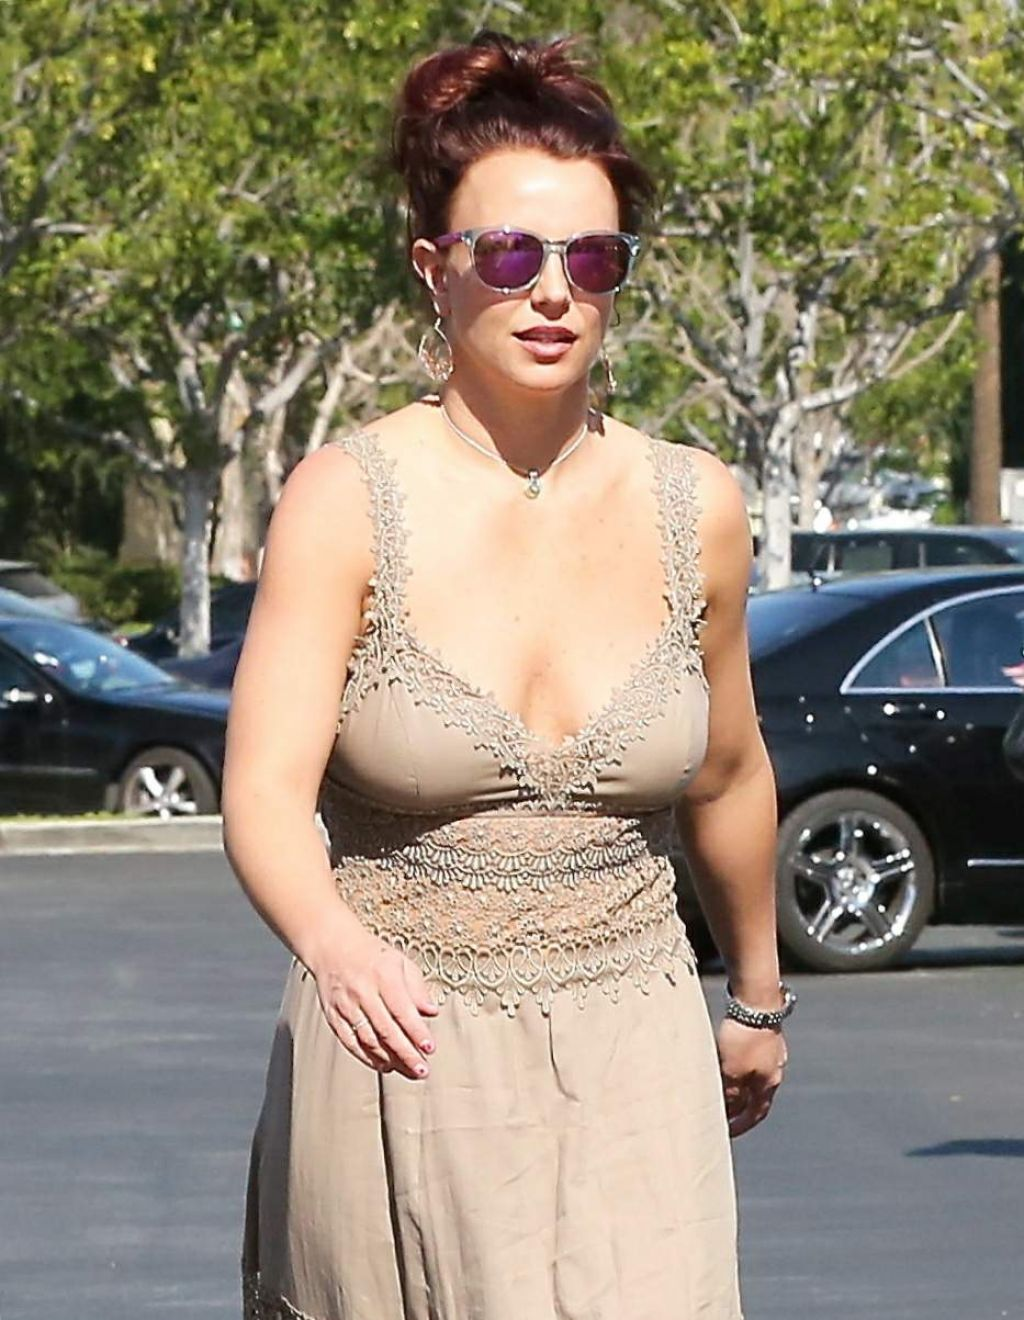 Britney Spears in Casual Long Dresses At Marmalade Cafe in Calabasas, February 2014